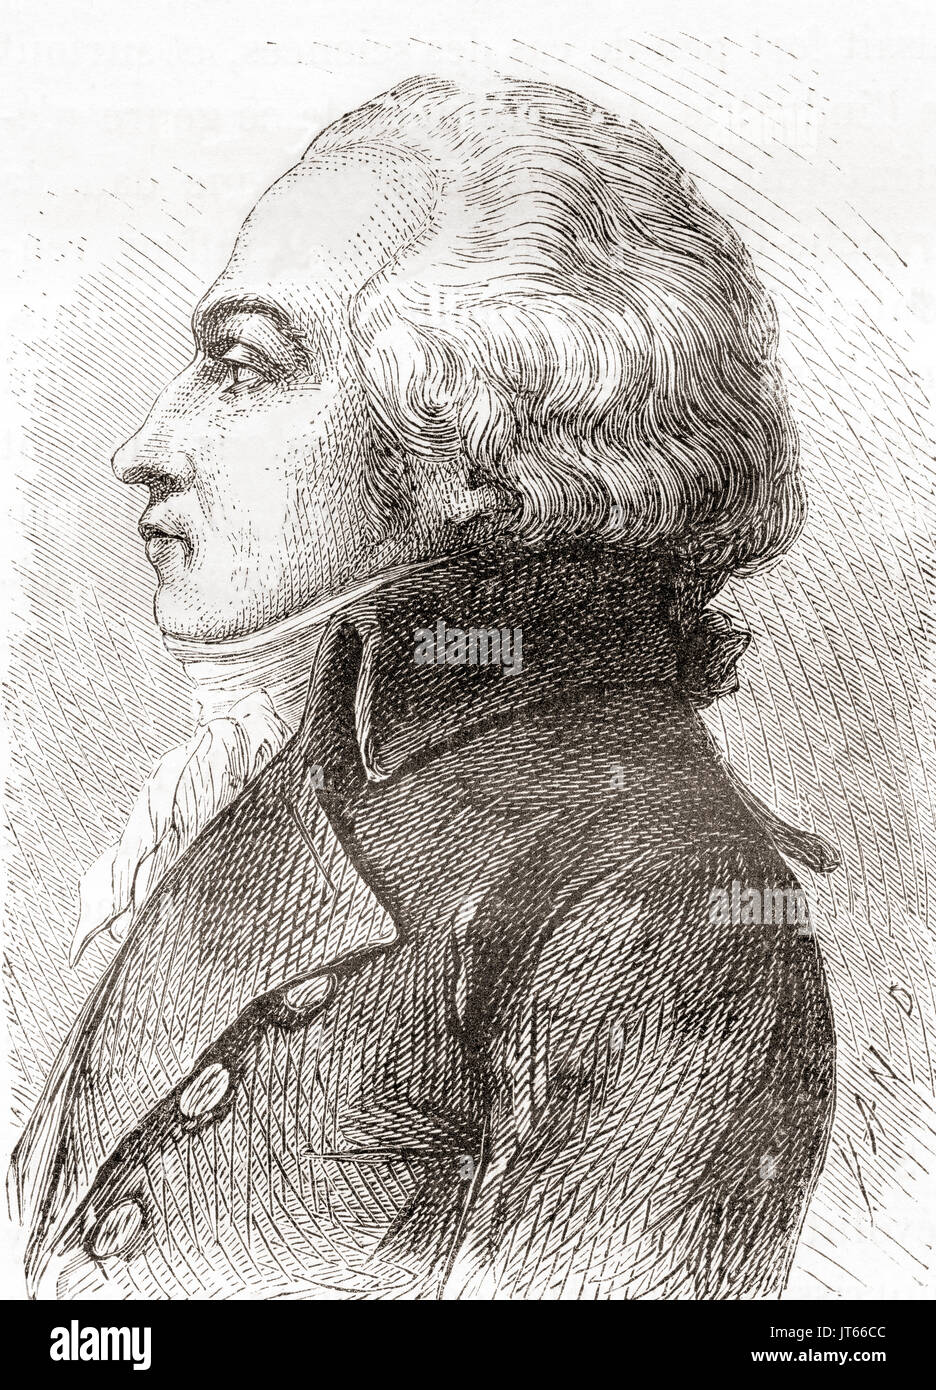 Jacques-Constantin Périer, 1742 -1818.  Self-taught French engineer and businessman.  From Les Merveilles de la Science, published 1870. - Stock Image